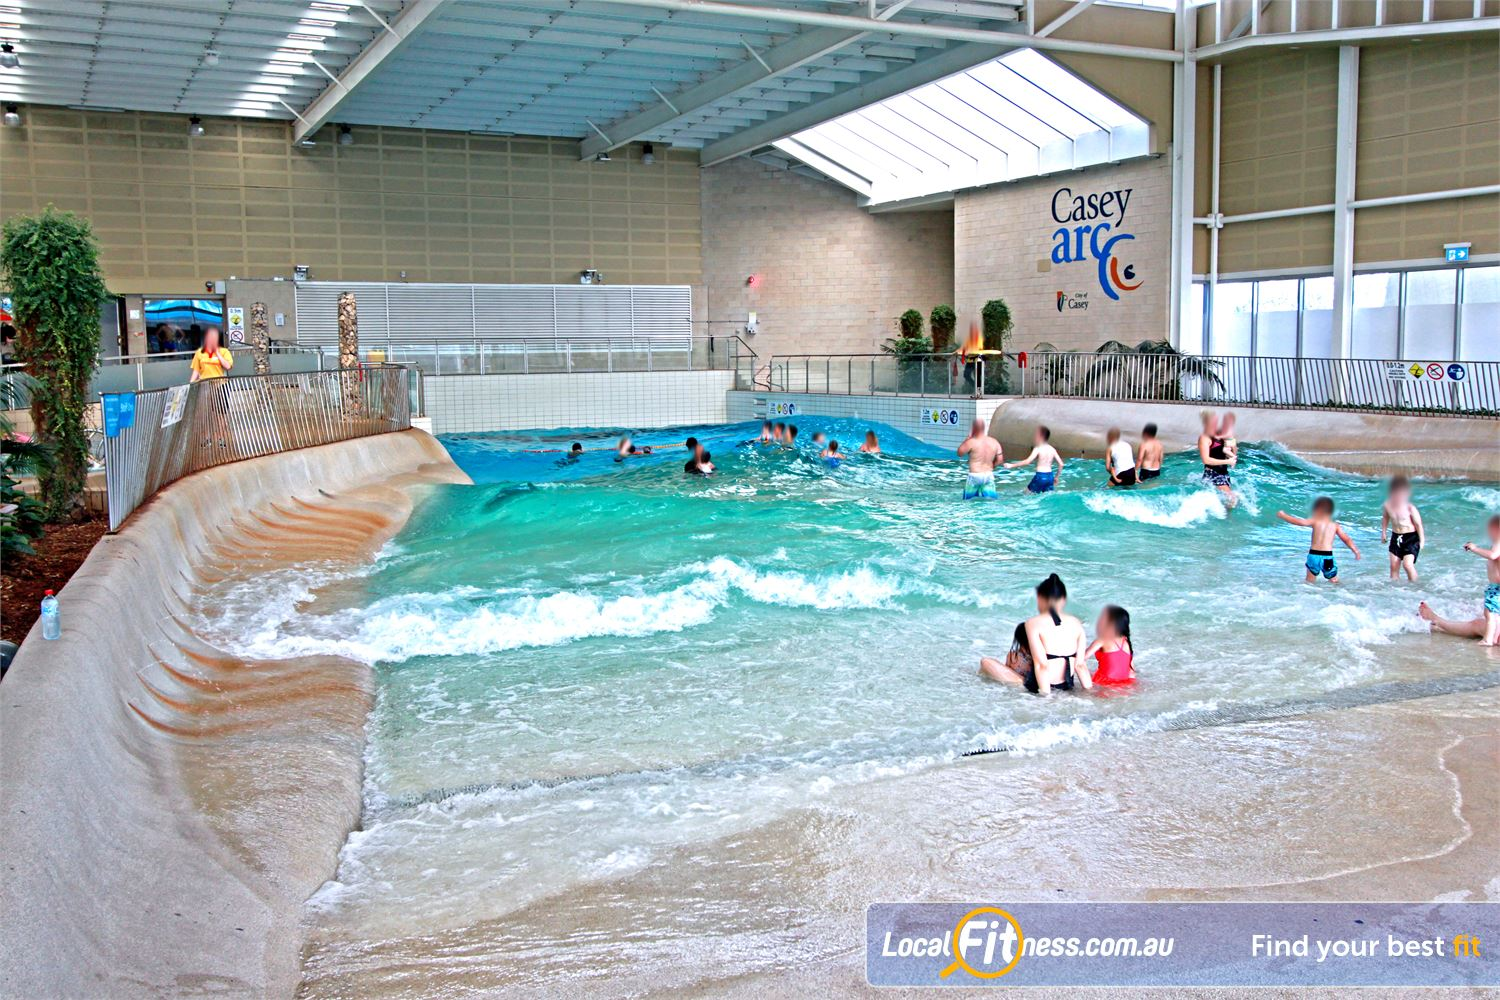 Casey Arc Narre Warren The star attraction at Casey ARC - The popular Wave pool.